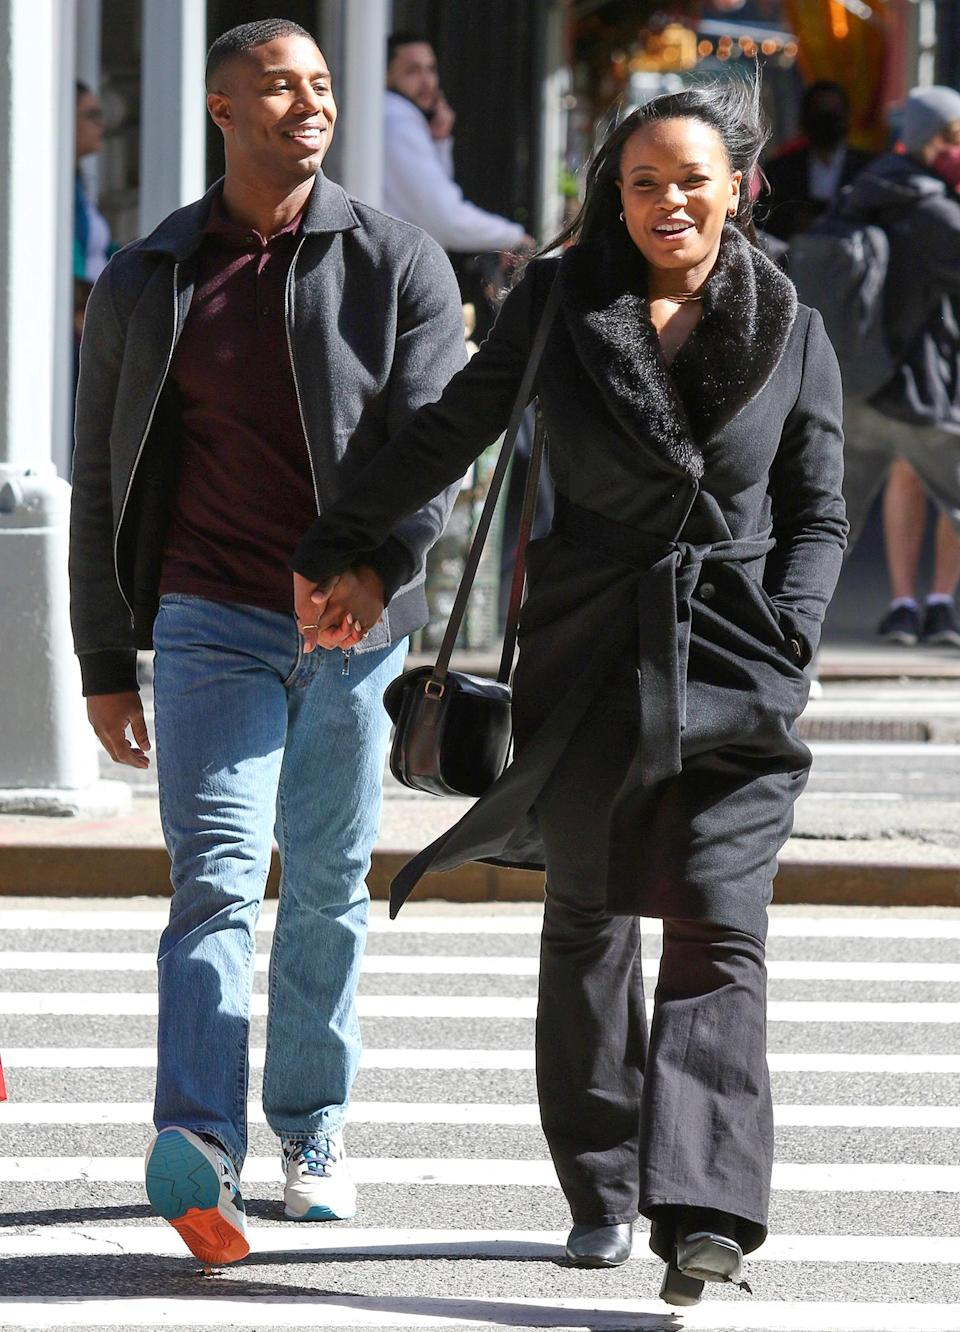 <p>Michael B. Jordan and Chante Adams walk hand-in-hand outside Rothmans Mens Clothing Store in New York City's Union Square on Friday while shooting scenes for their new film. </p>